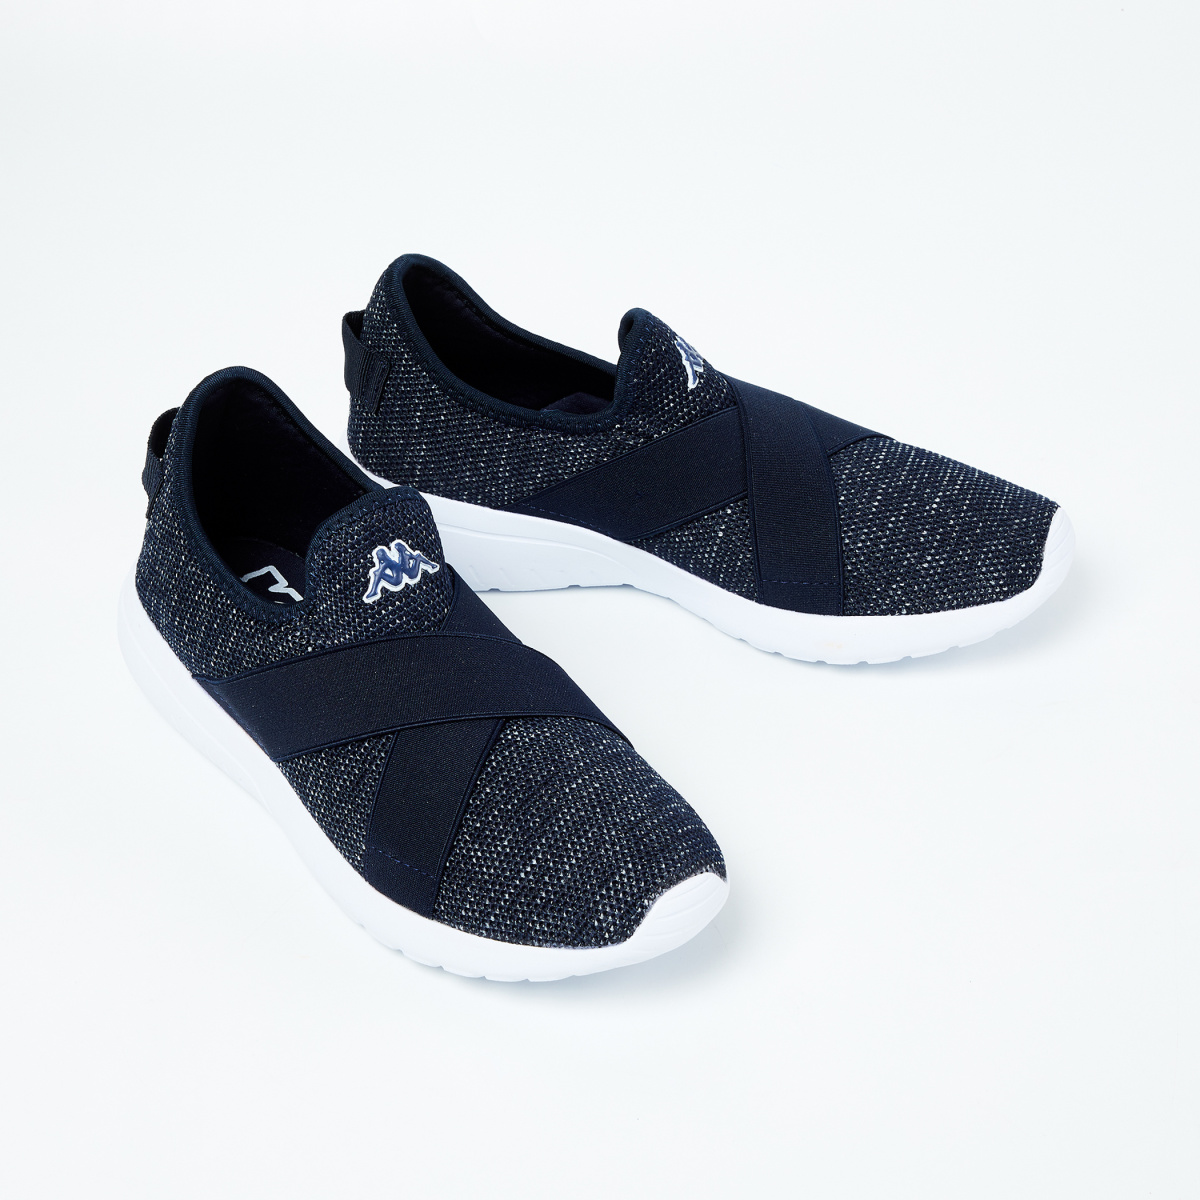 KAPPA Textured Slip-On Sports Shoes